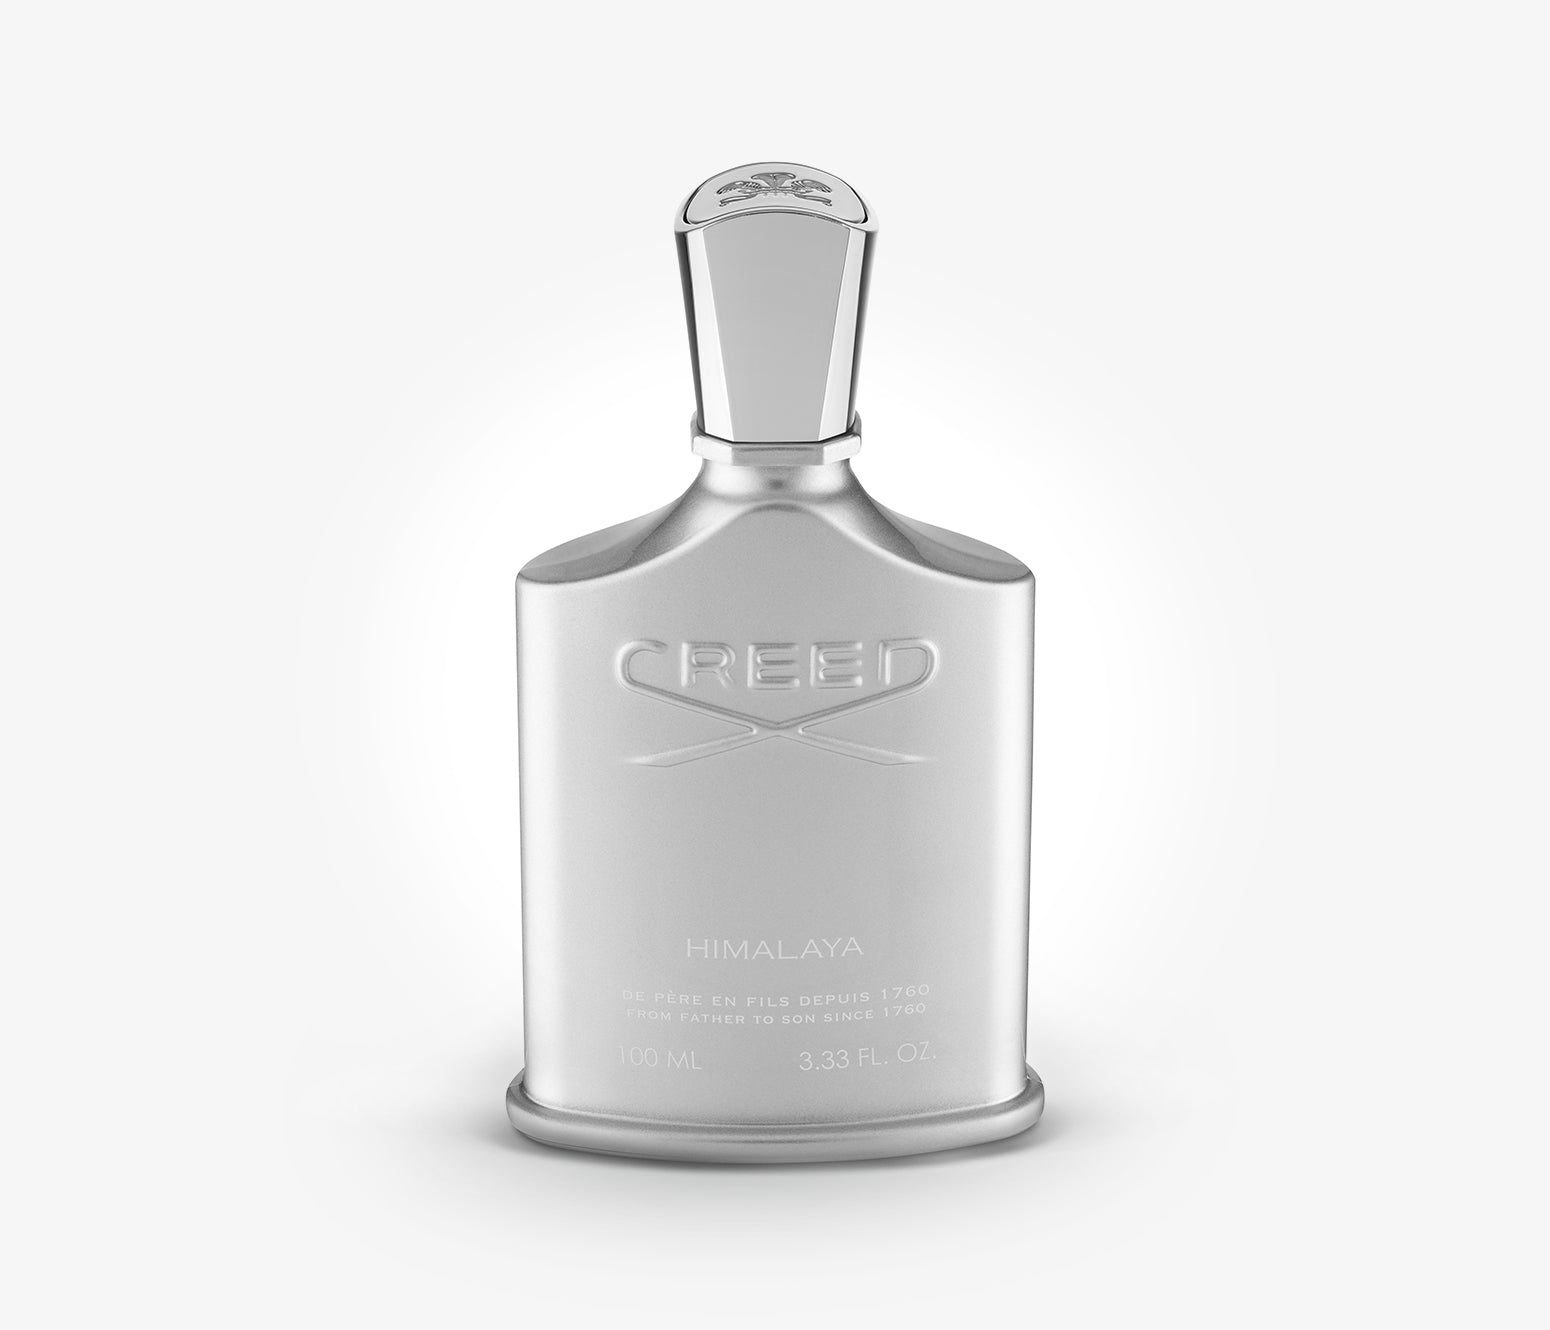 Creed - Himalaya - 100ml - AIM001 - Product Image - Fragrance - Les Senteurs